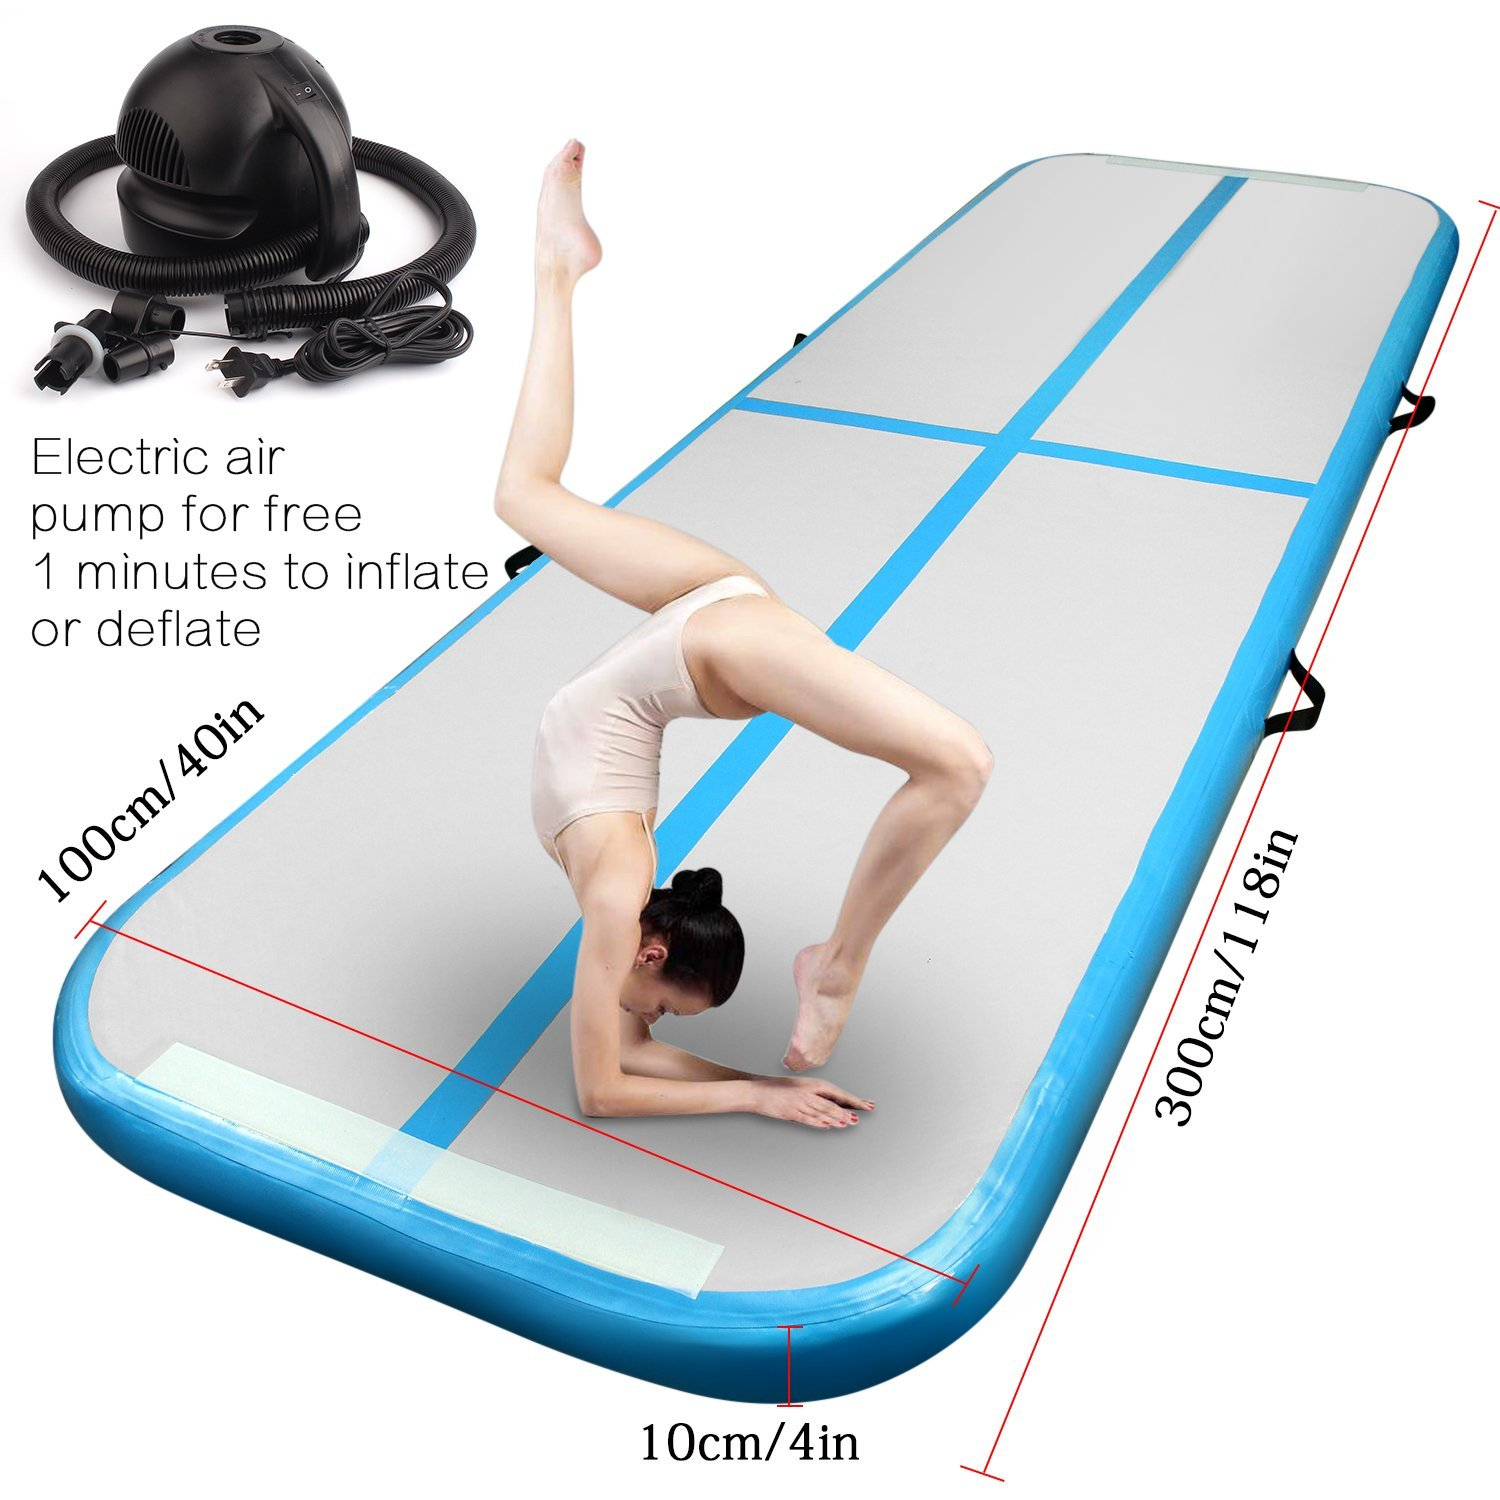 Inflatable Gymnastics AirTrack Tumbling Air Track Floor 5m Trampoline Electric Air Pump for Home Use Training